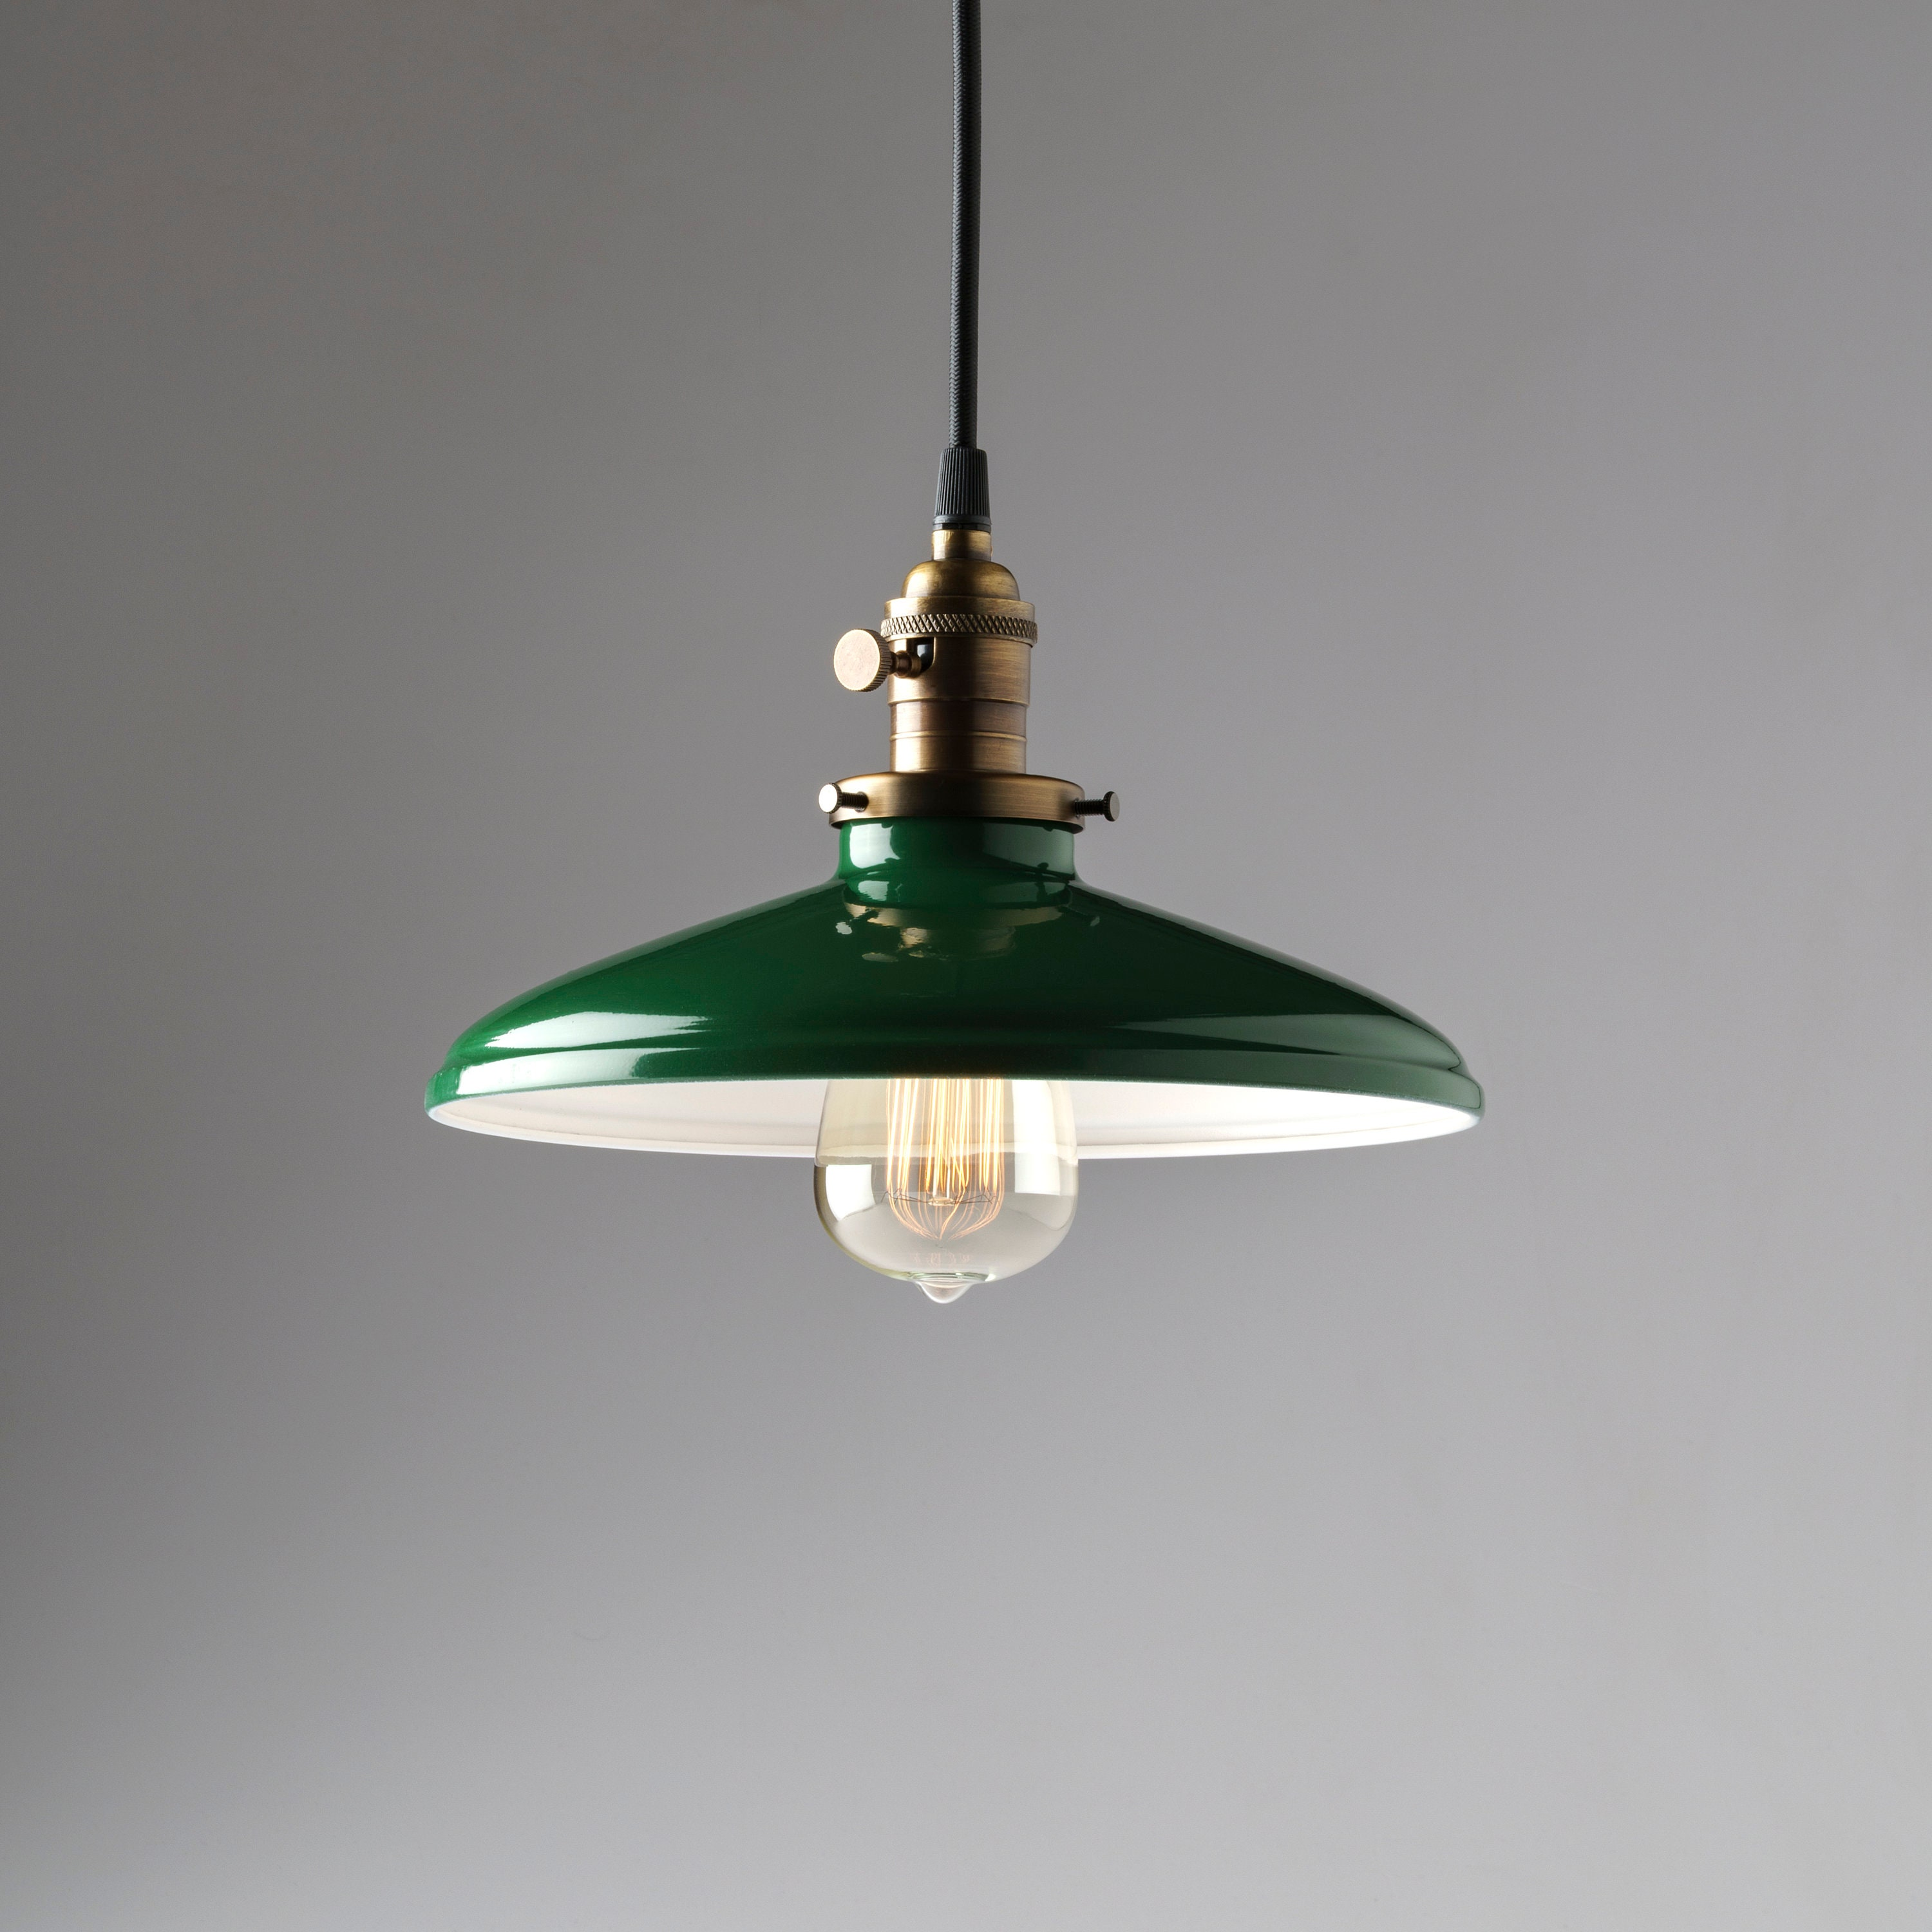 Vintage And Industrial Lighting From Etsy: Pendant Light Fixture Green Vintage Style Industrial Metal